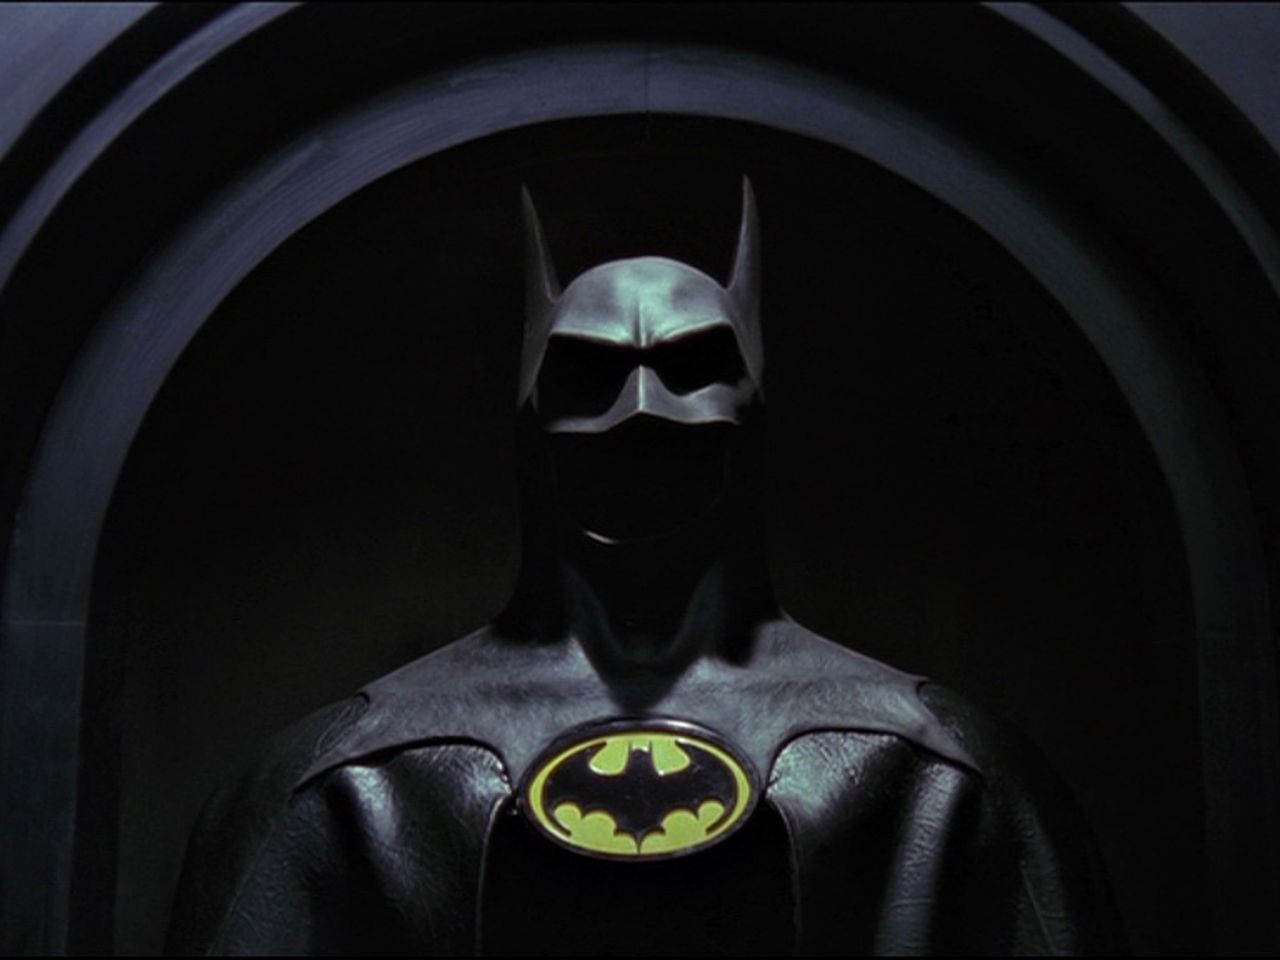 The Batman Suit Wallpaper 1280x960